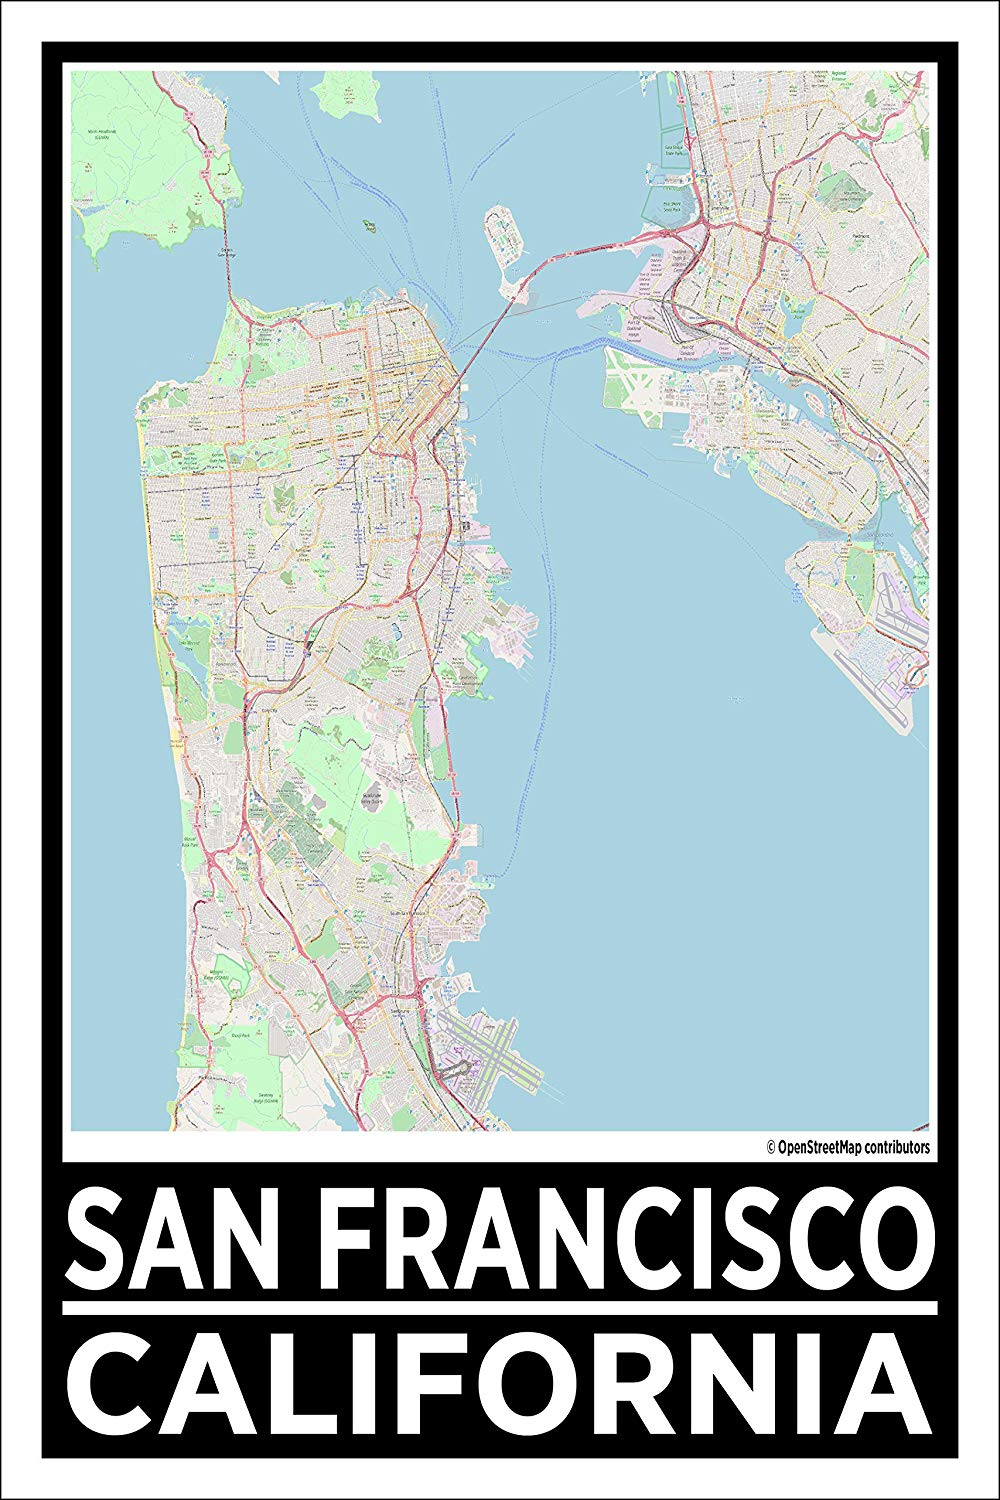 "Spitzy's San Francisco California Map Poster - Home Wall Art for Your Bedroom or Home Office - Map of San Francisco, City Map Poster (12"" x 18"" Dimensions Include a White .5"" Border)"